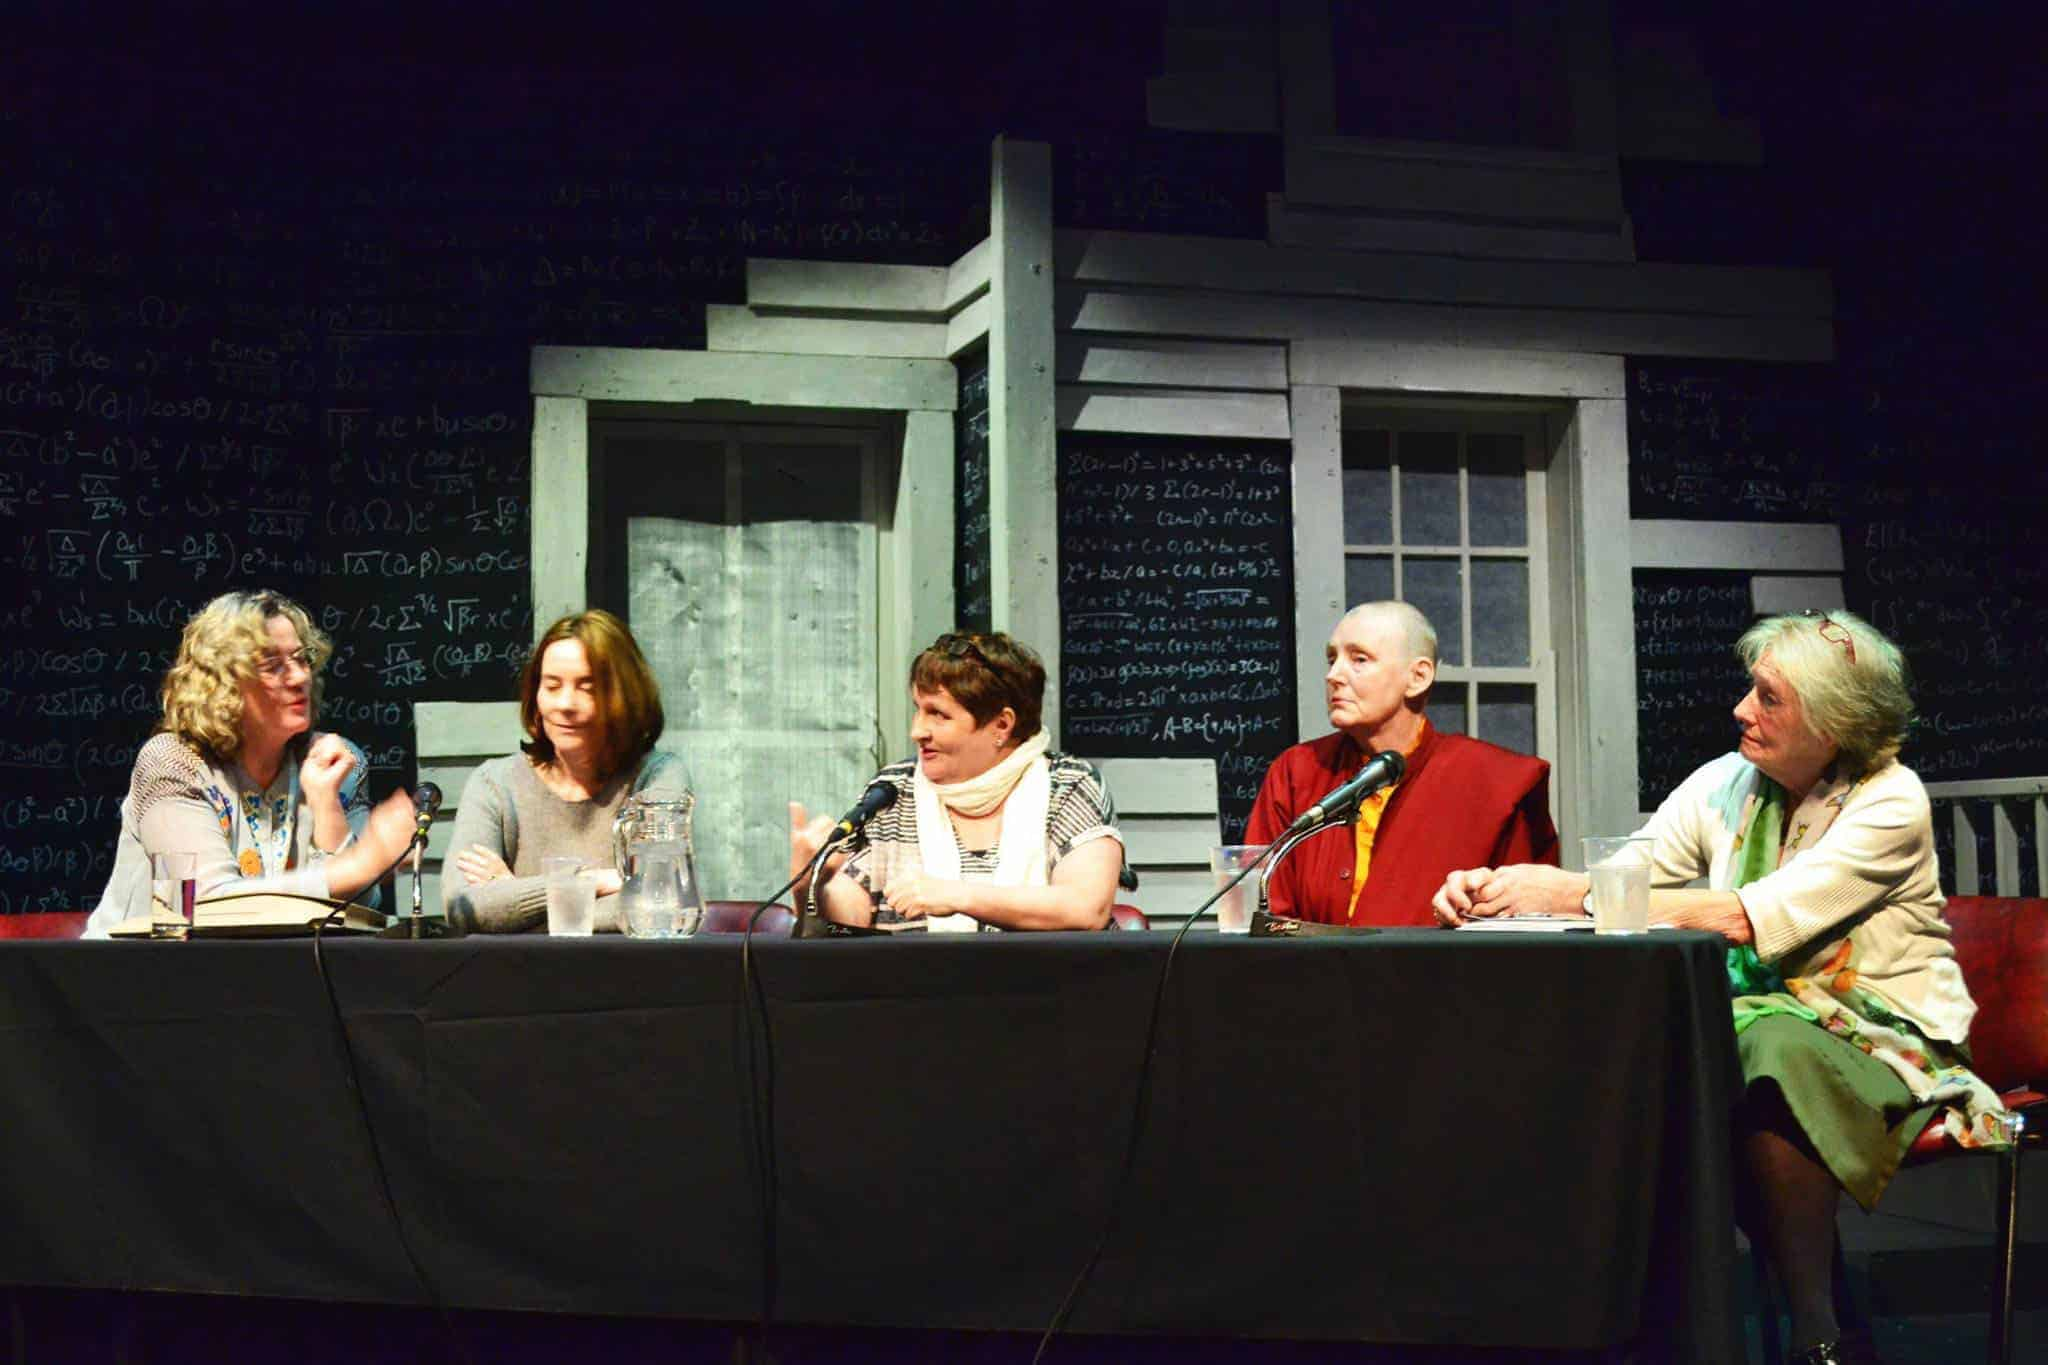 100 Years of Cinema -Goup discussion - Margo Harkin, Hilary Dully, Anne Crilly, Pat Murphy & Lelia Doolan